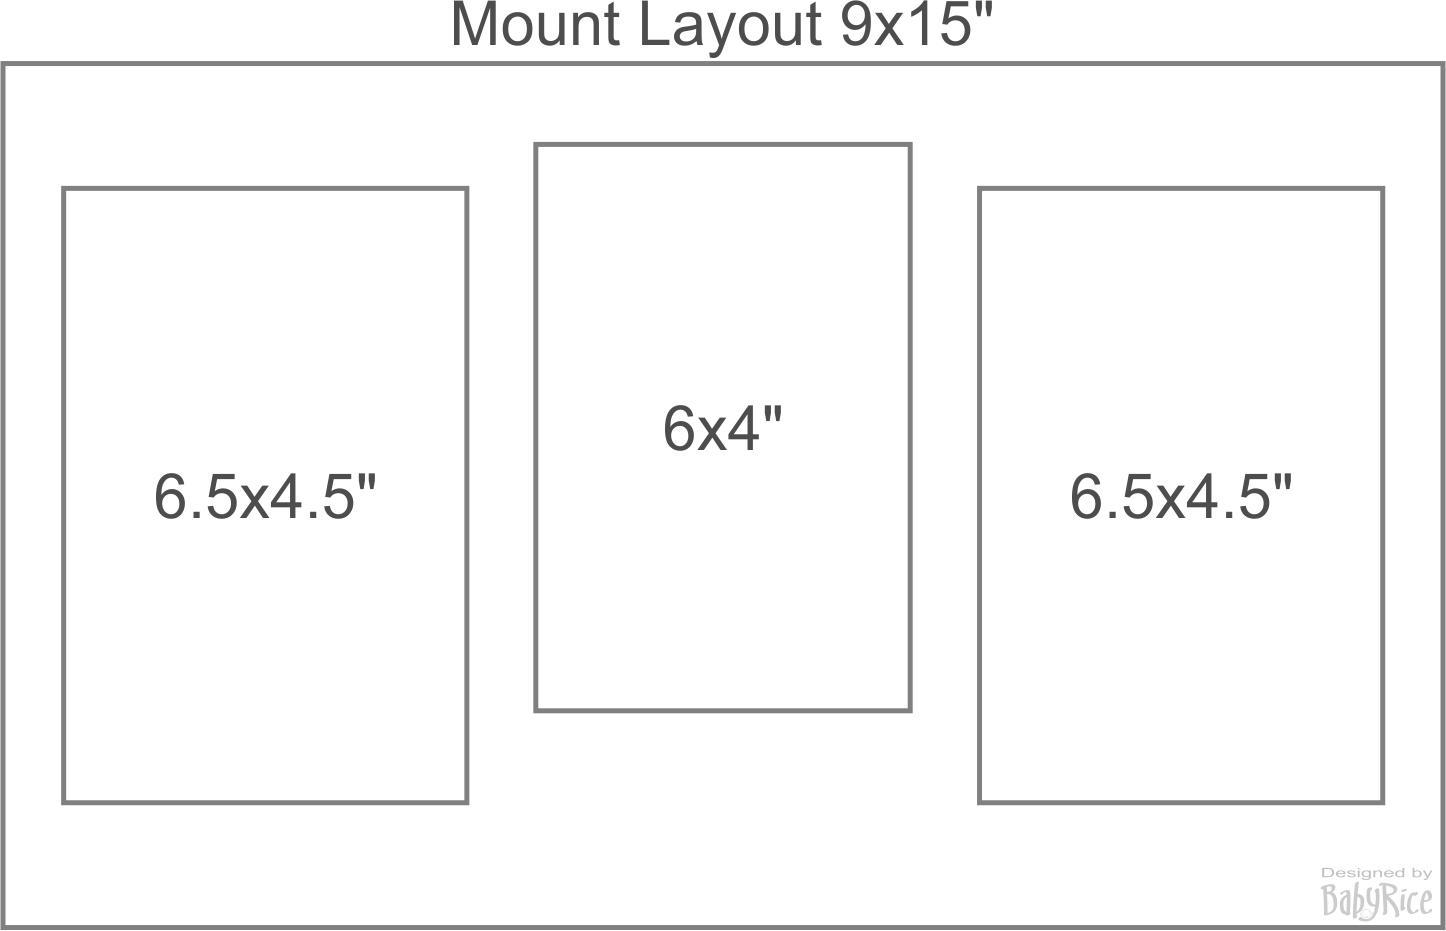 4 Hole Mount Omit Text Specification